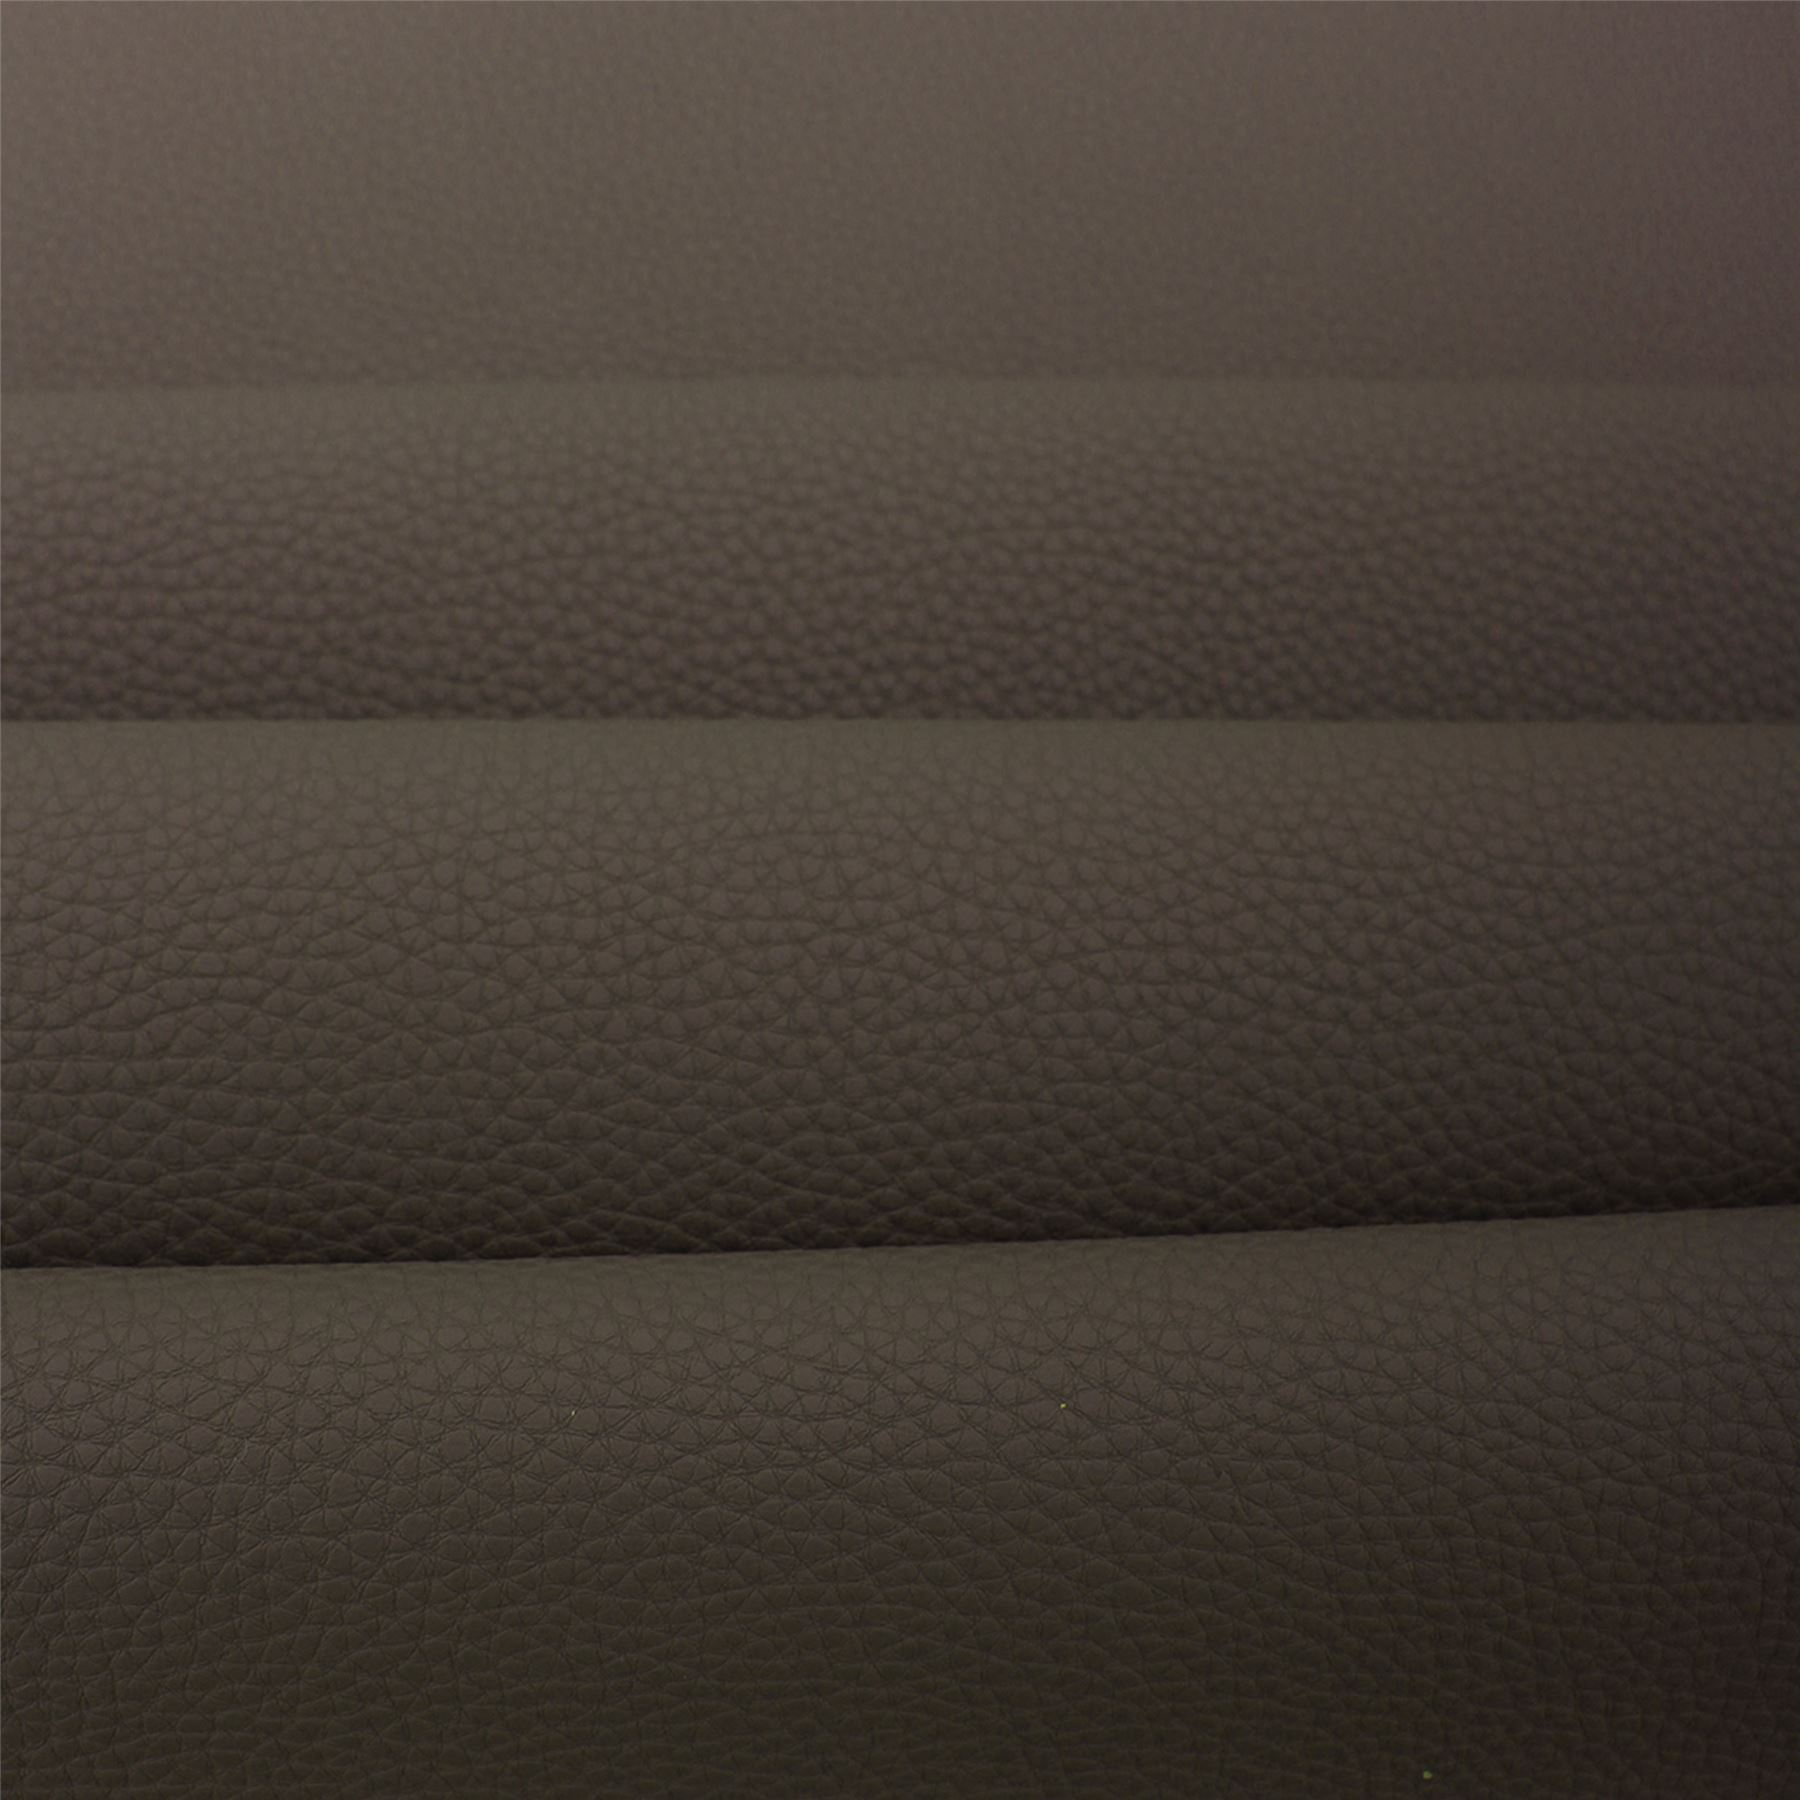 Nova-Faux-Leatherette-Artificial-Leather-Heavy-Grain-Upholstery-Vehicle-Fabric thumbnail 18